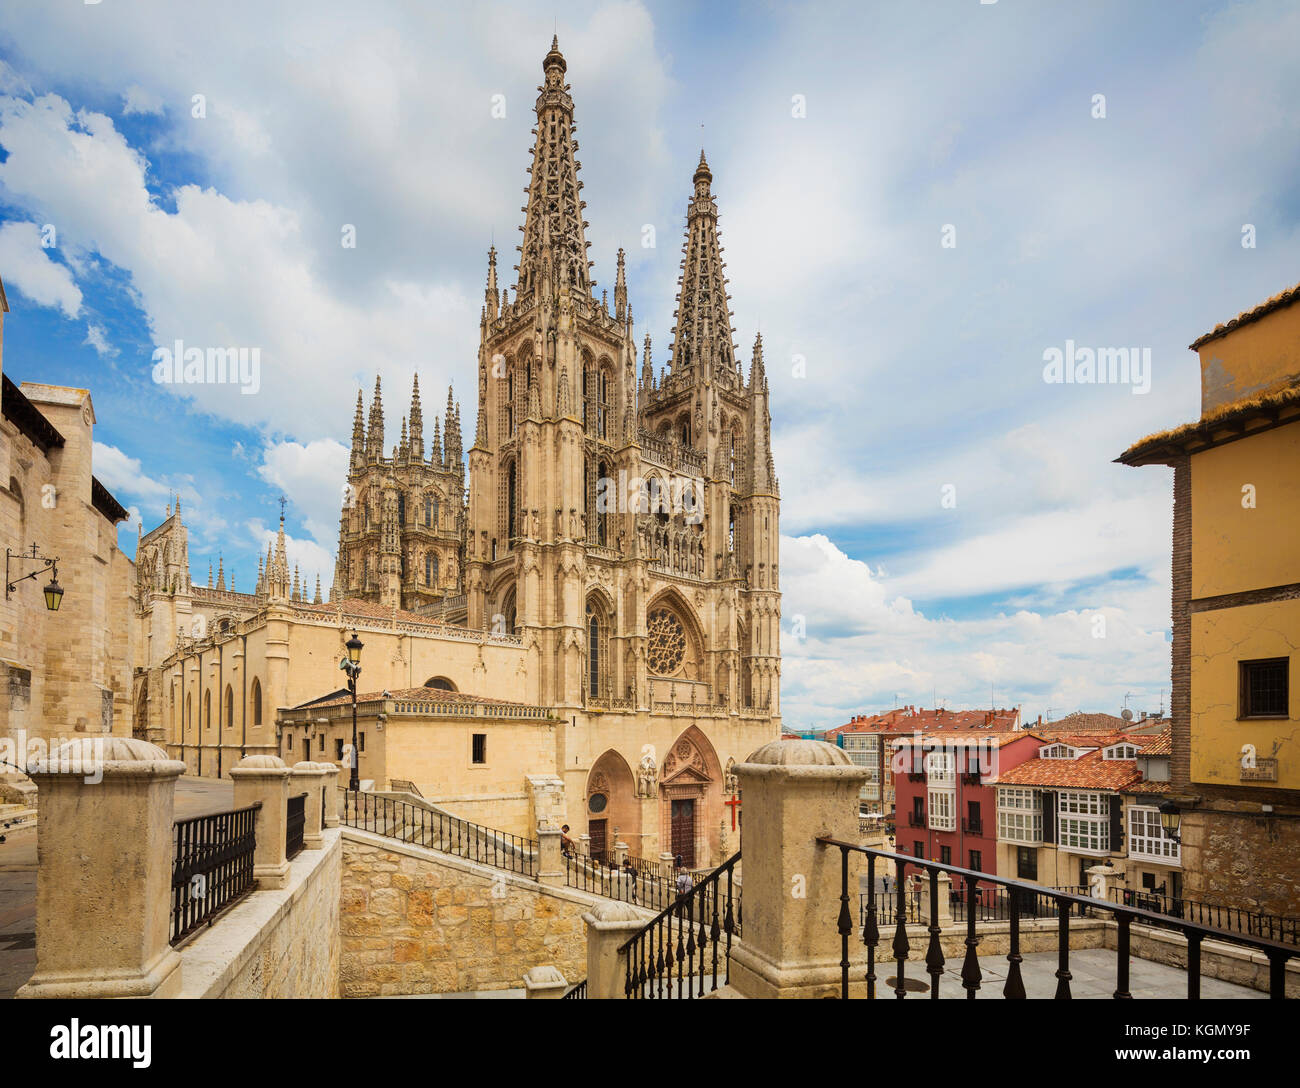 Burgos, Burgos Province, Castile y Leon, Spain.  The Gothic cathedral.  Construction began in the 13th century. - Stock Image